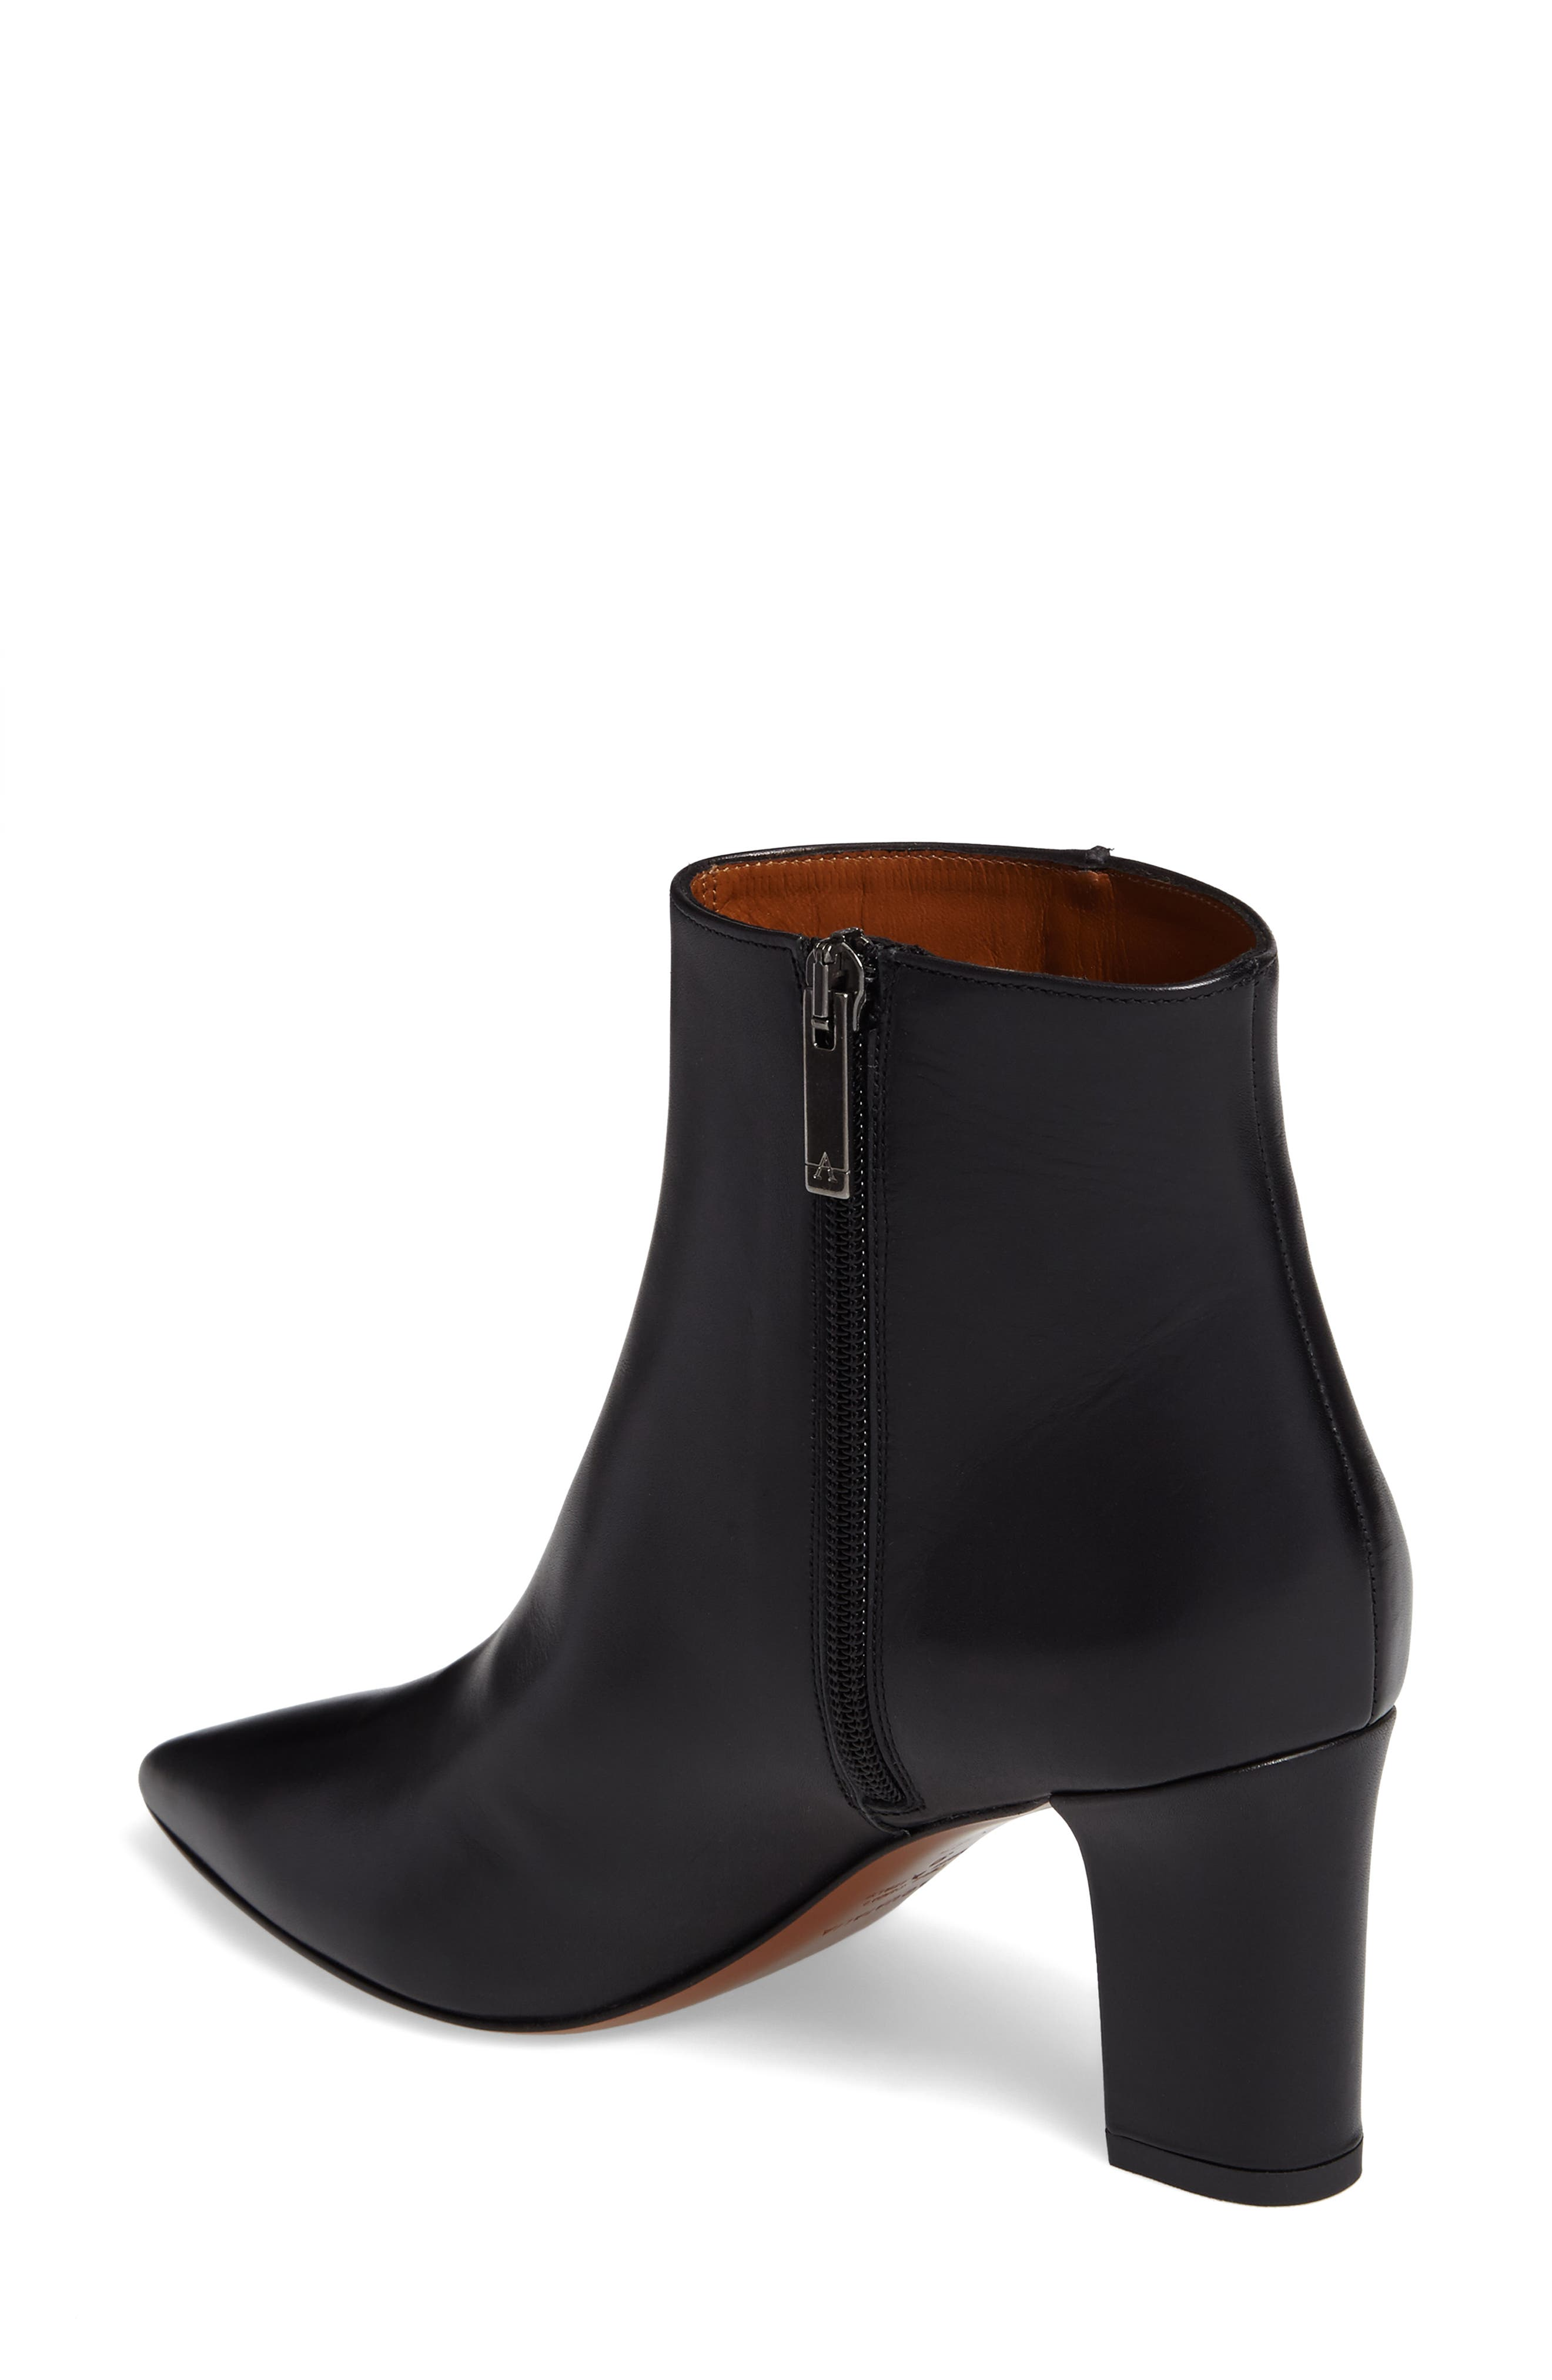 Maia Weatherproof Pointed Toe Bootie,                             Alternate thumbnail 2, color,                             002